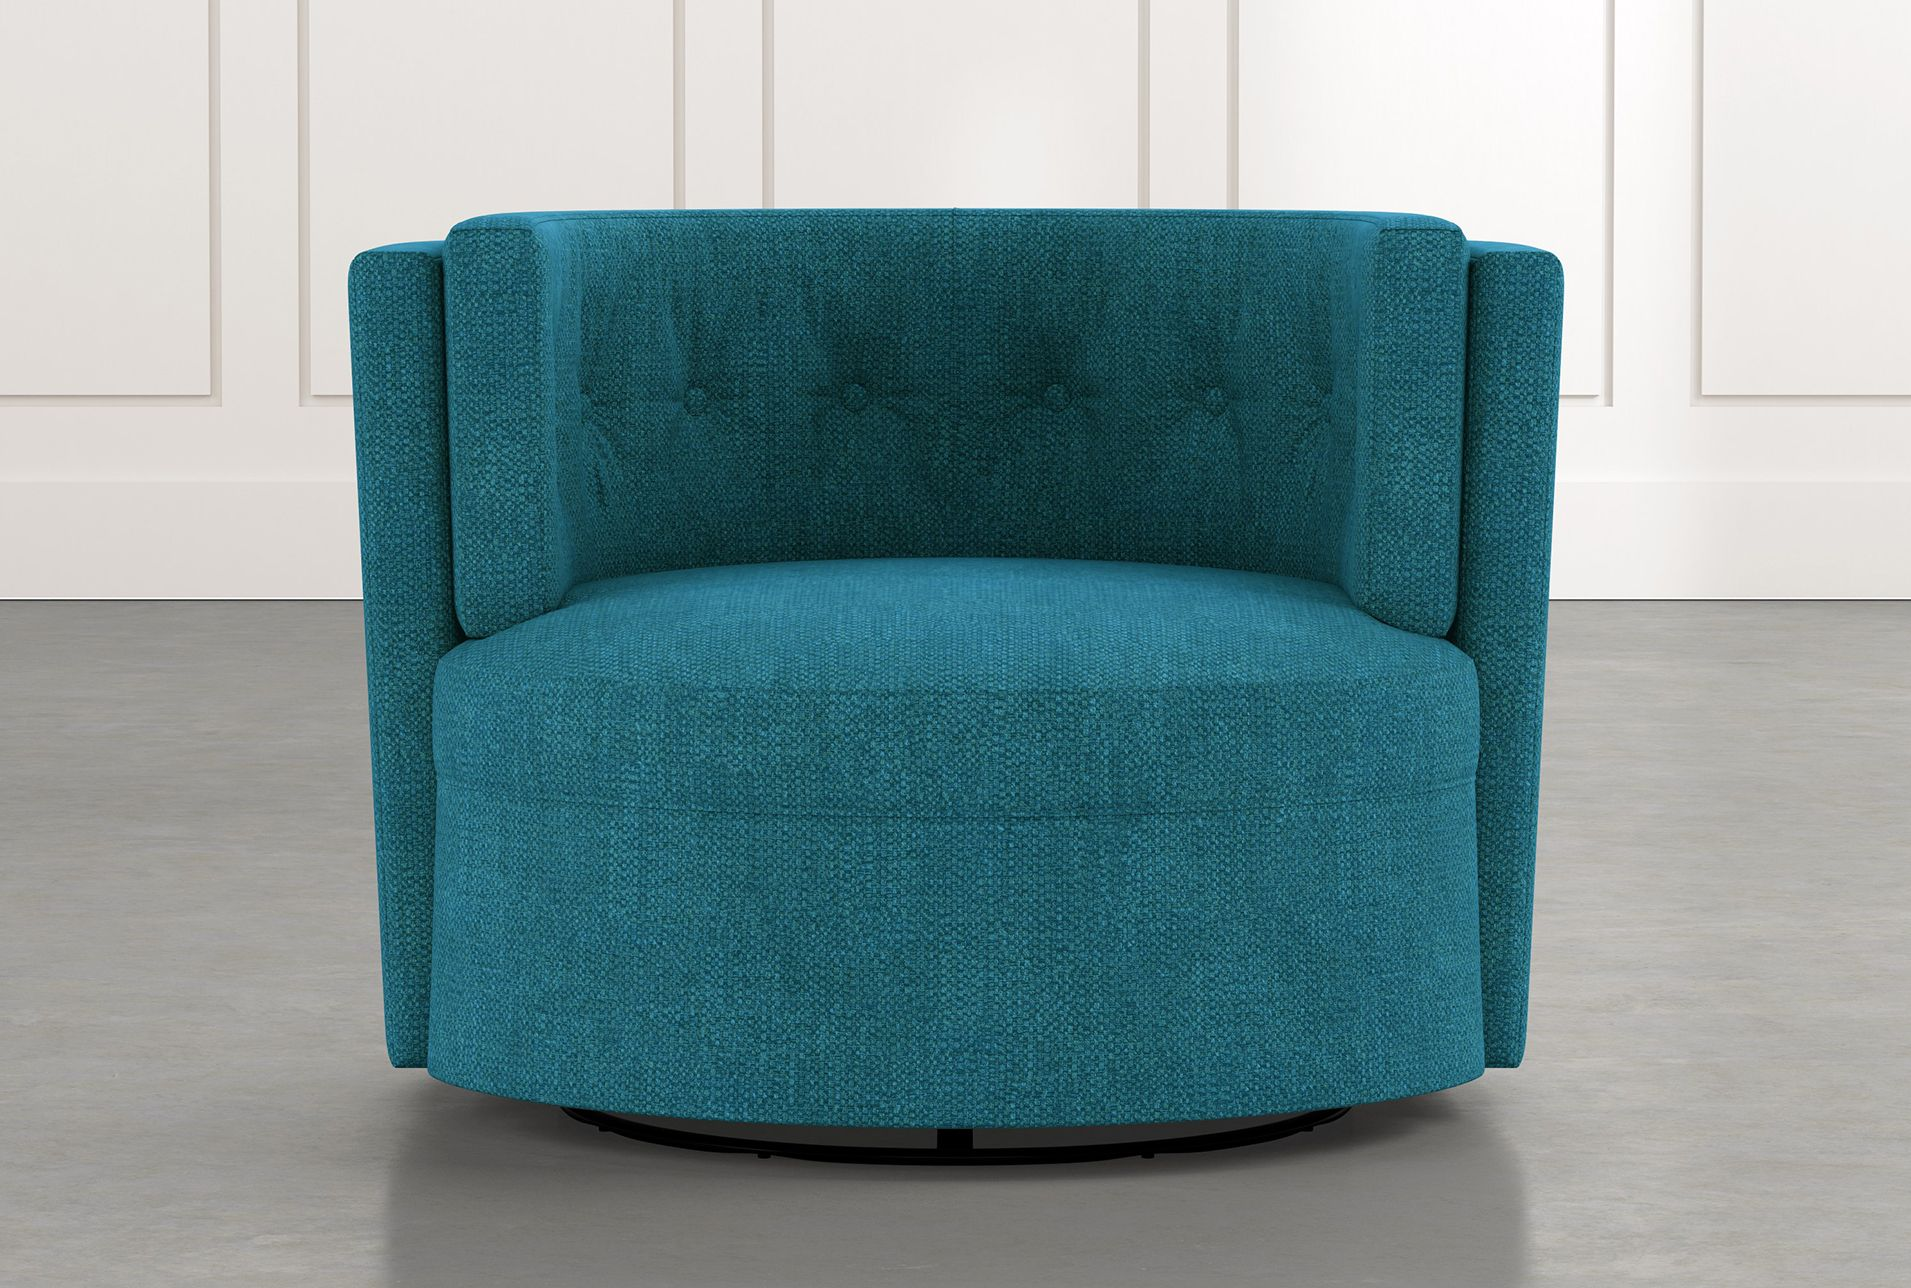 Best Aidan Ii Teal Swivel Accent Chair Blue 550 In 2020 400 x 300